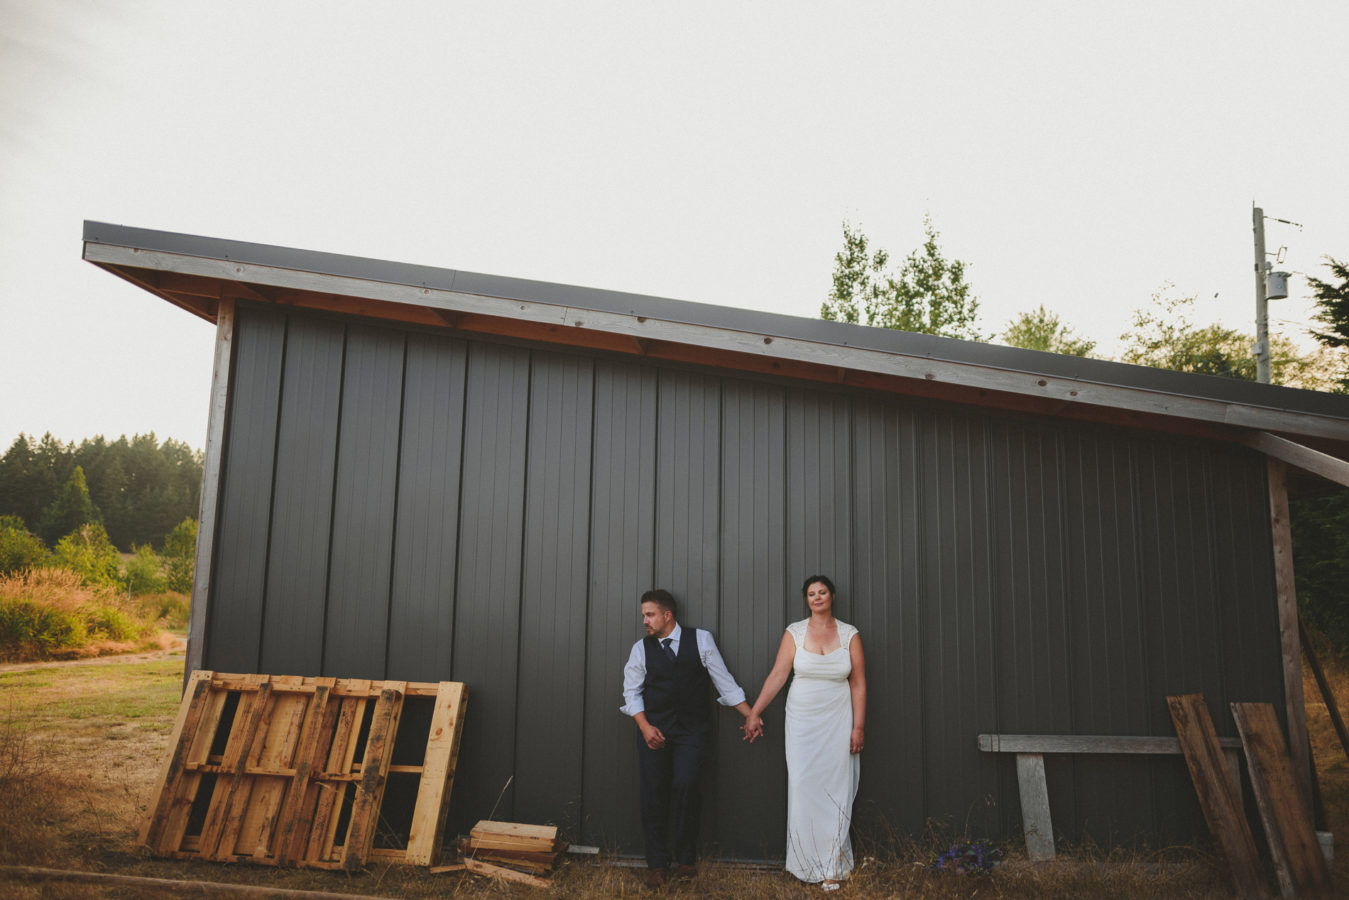 bride and groom leaning against a metal sided out building in a field on their wedding day